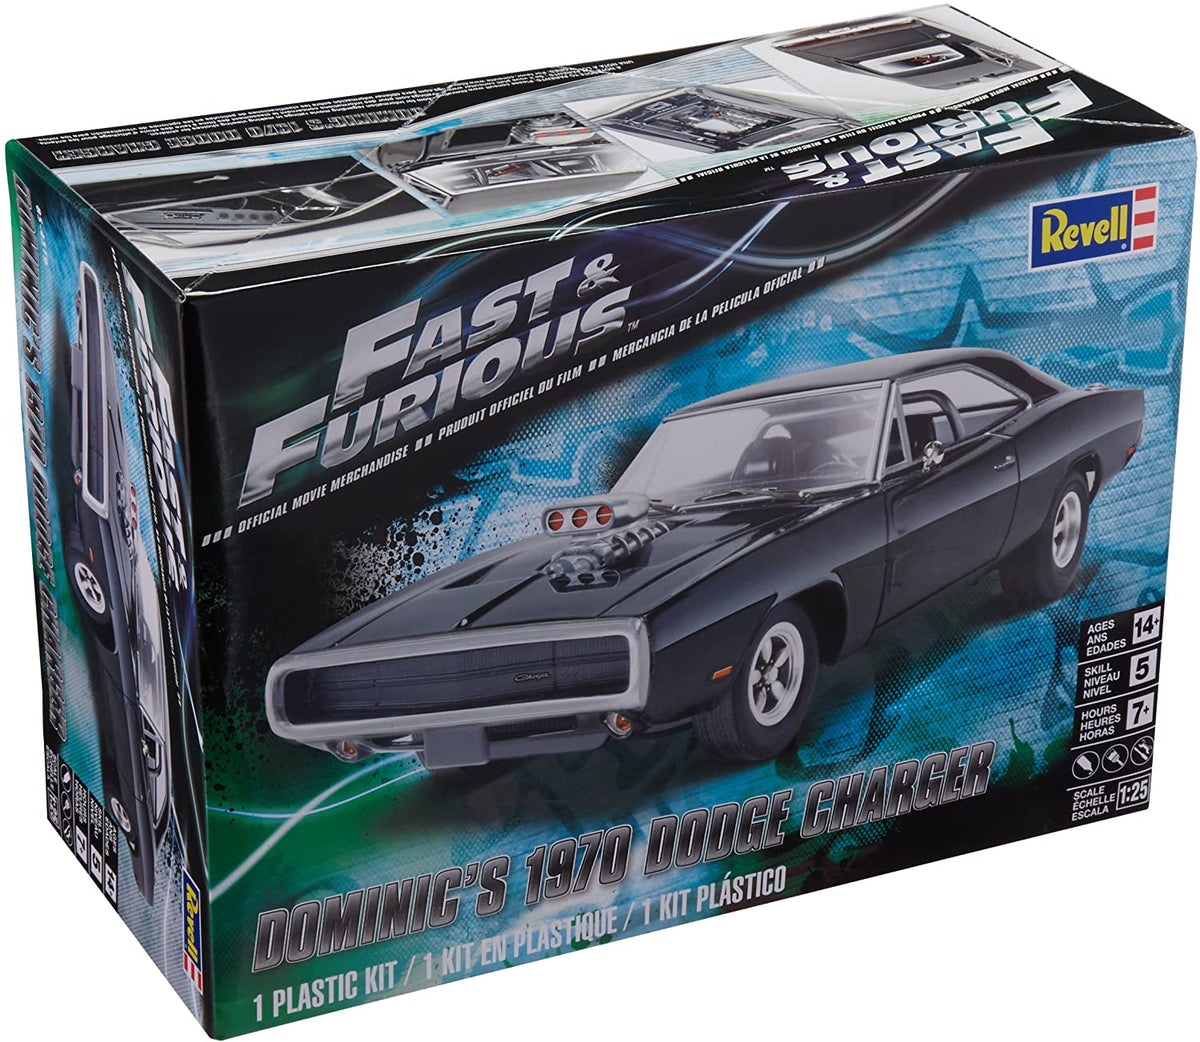 REVELL FAST AND FURIOUS DOMINICS 1970 DODGE CHARGER | REVELL | Toyworld Frankston